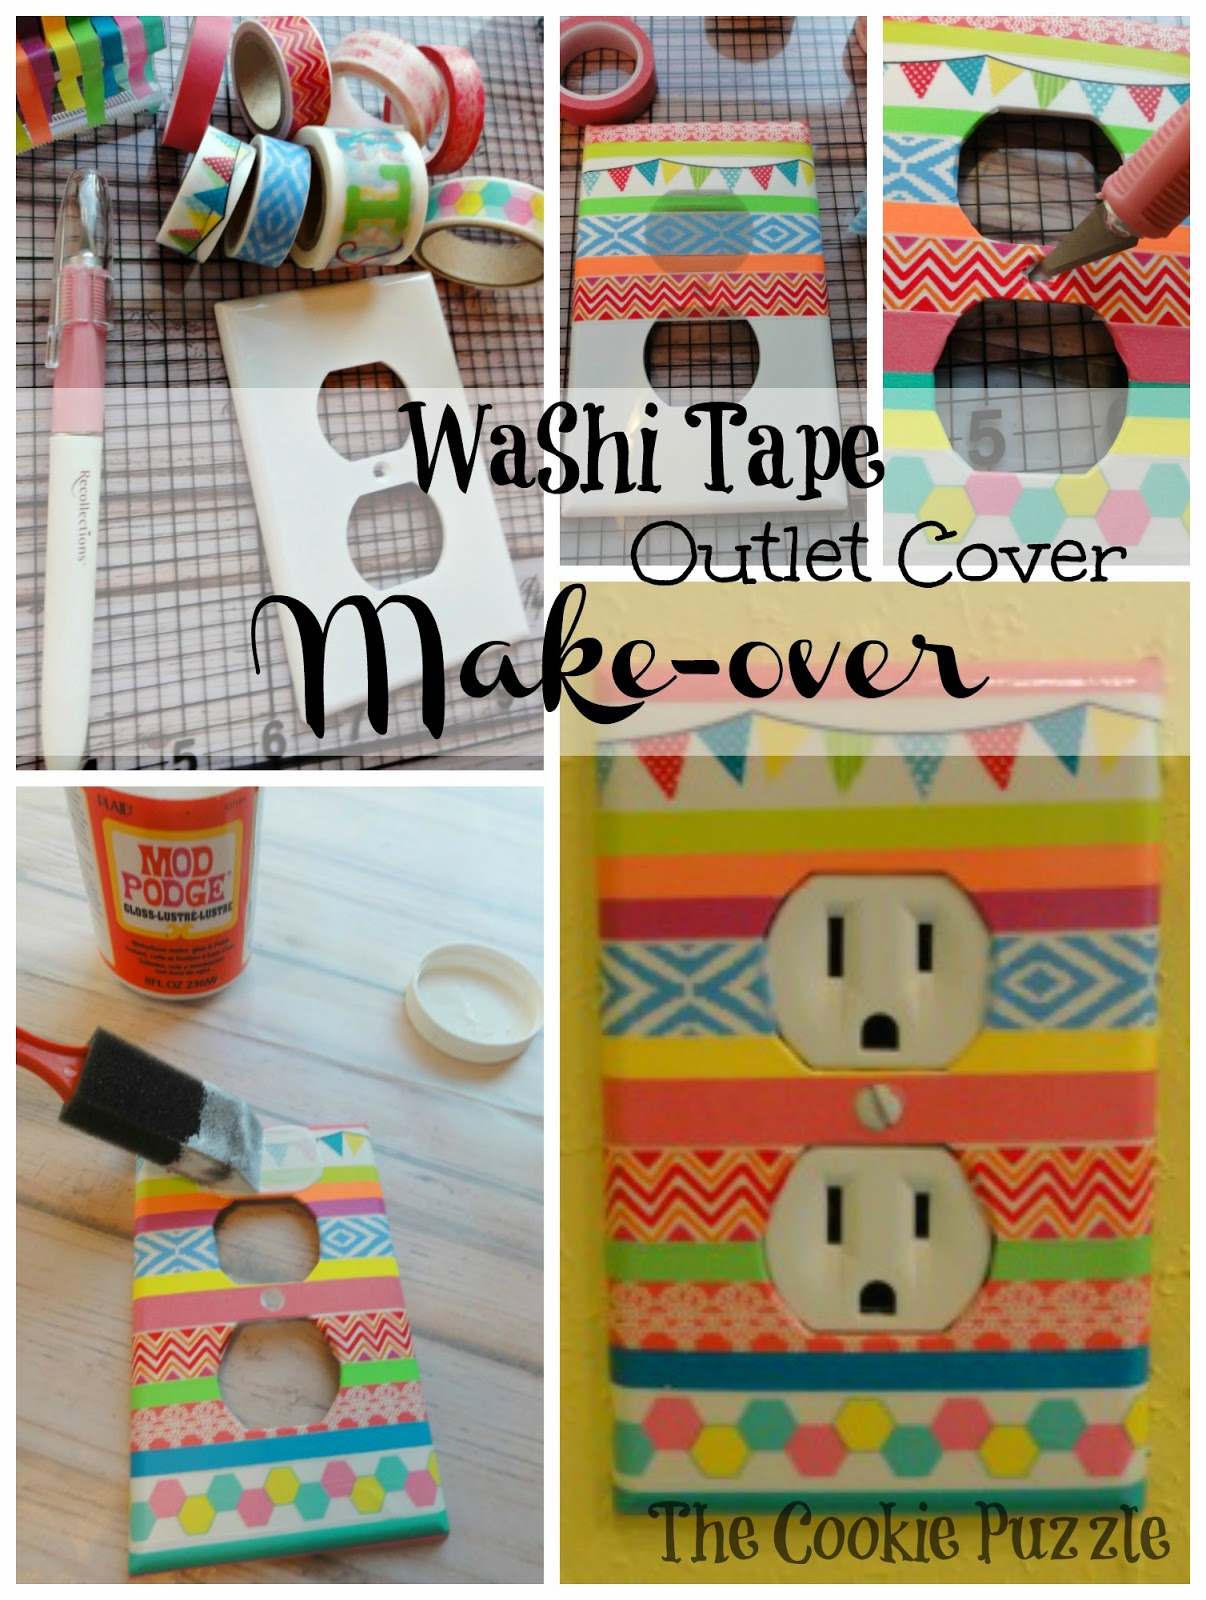 Washi Tape Outlet Cover